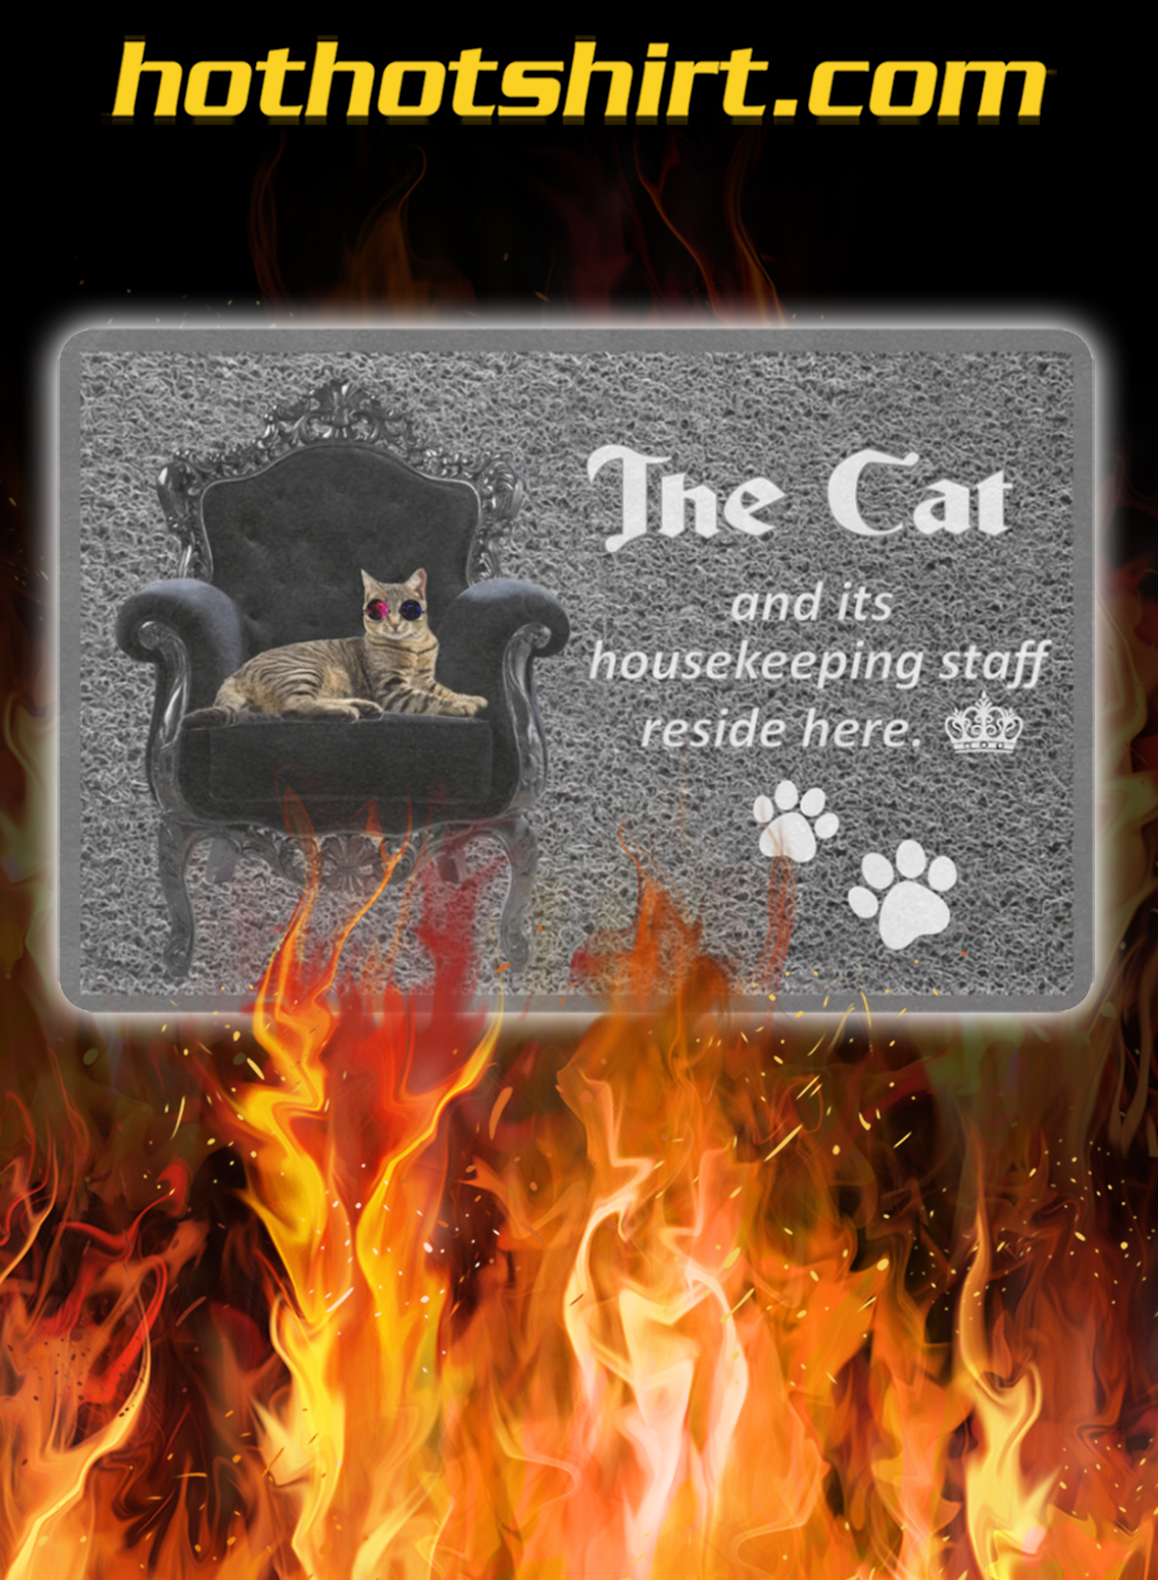 The cat and its housekeeping staff reside here doormat- pic 1